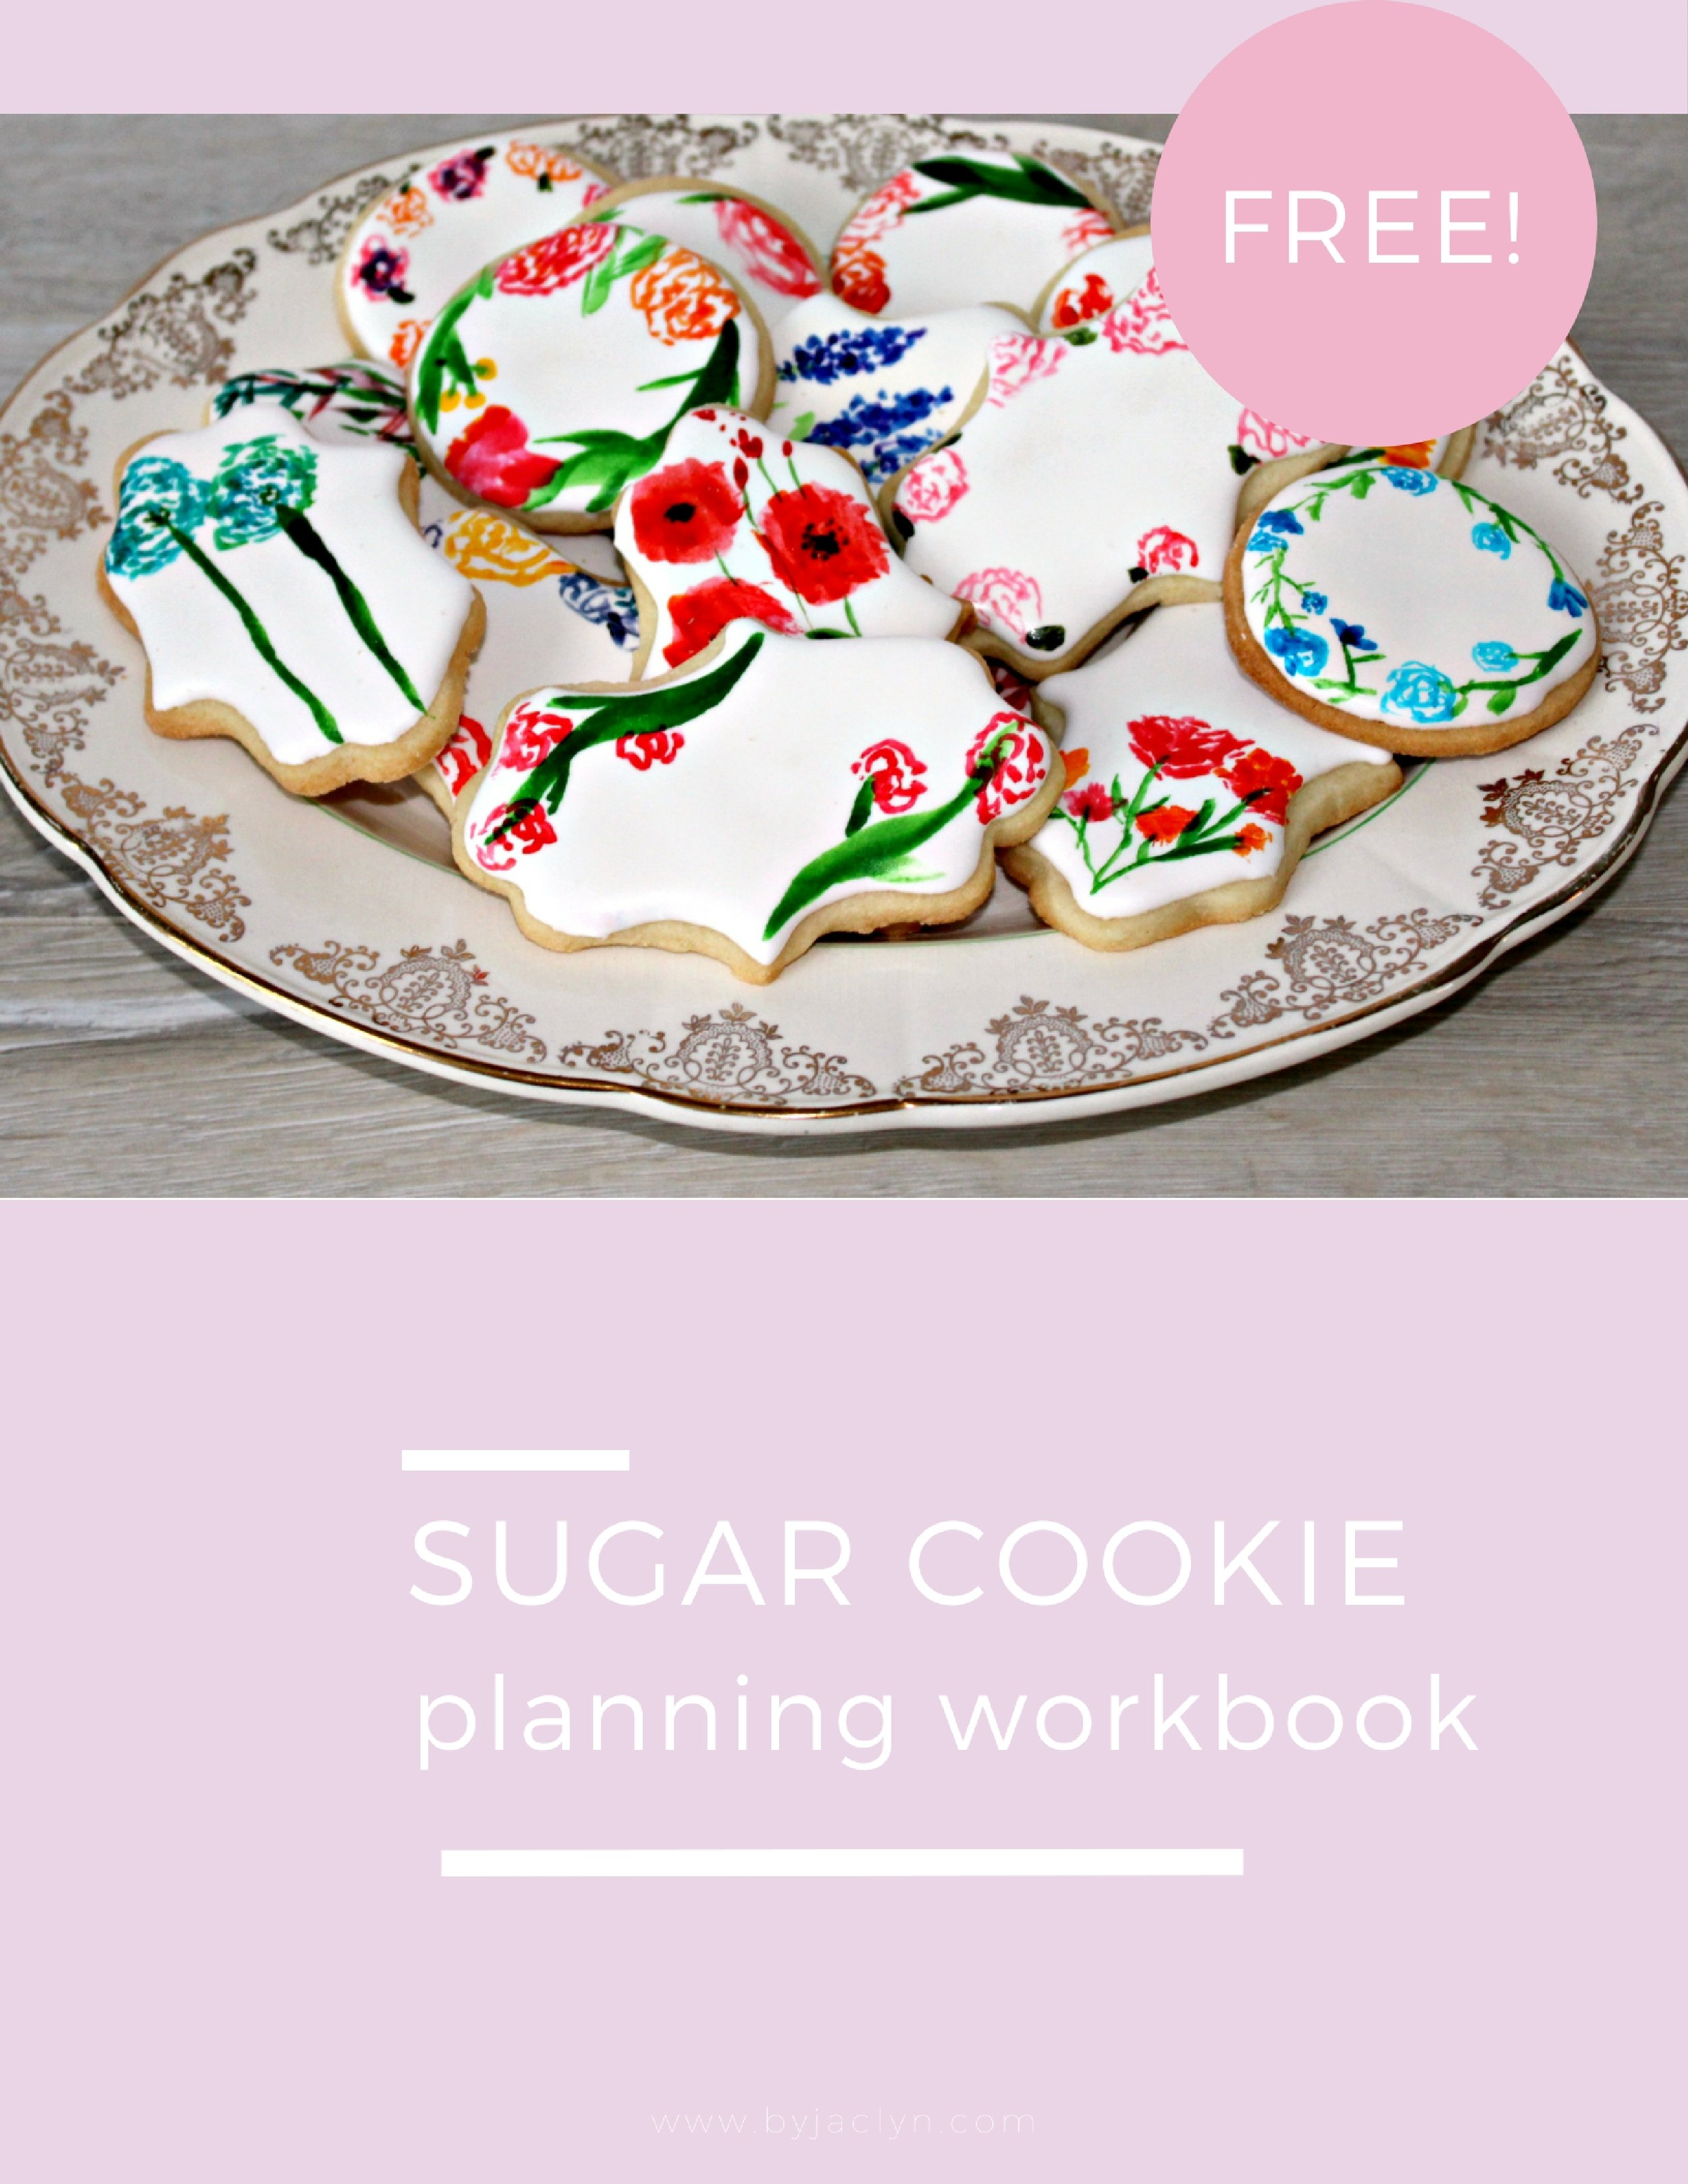 Free Sugar Cookie Planning Workbook